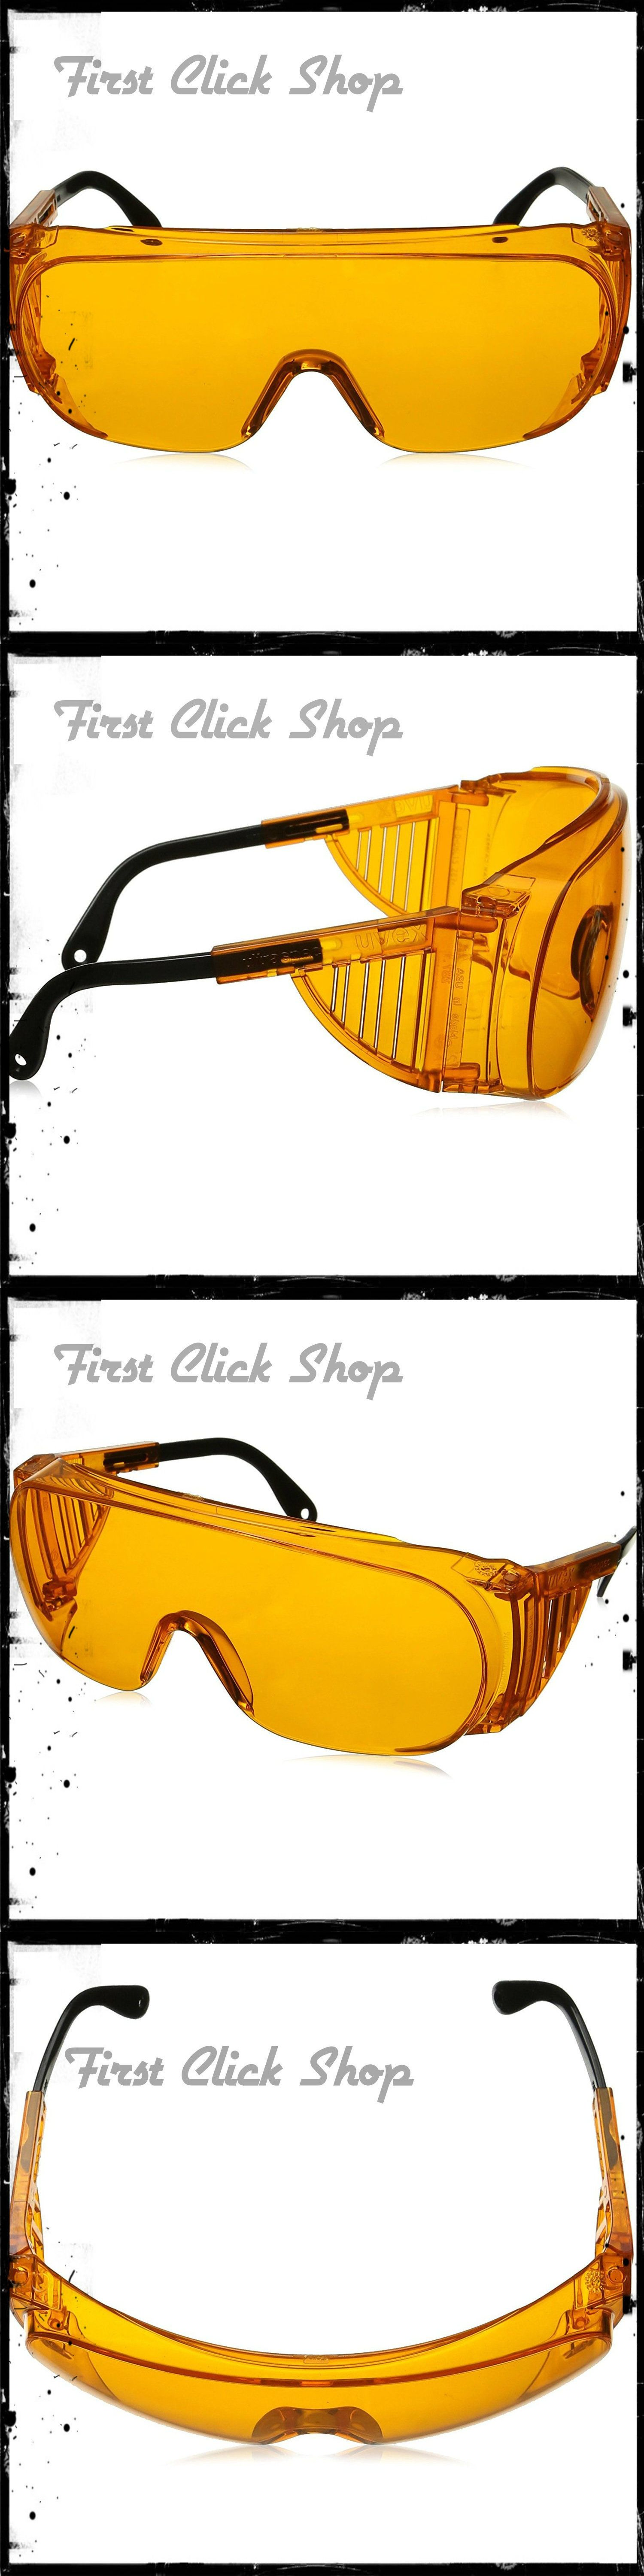 Pin on Glasses Goggles and Shields 43615